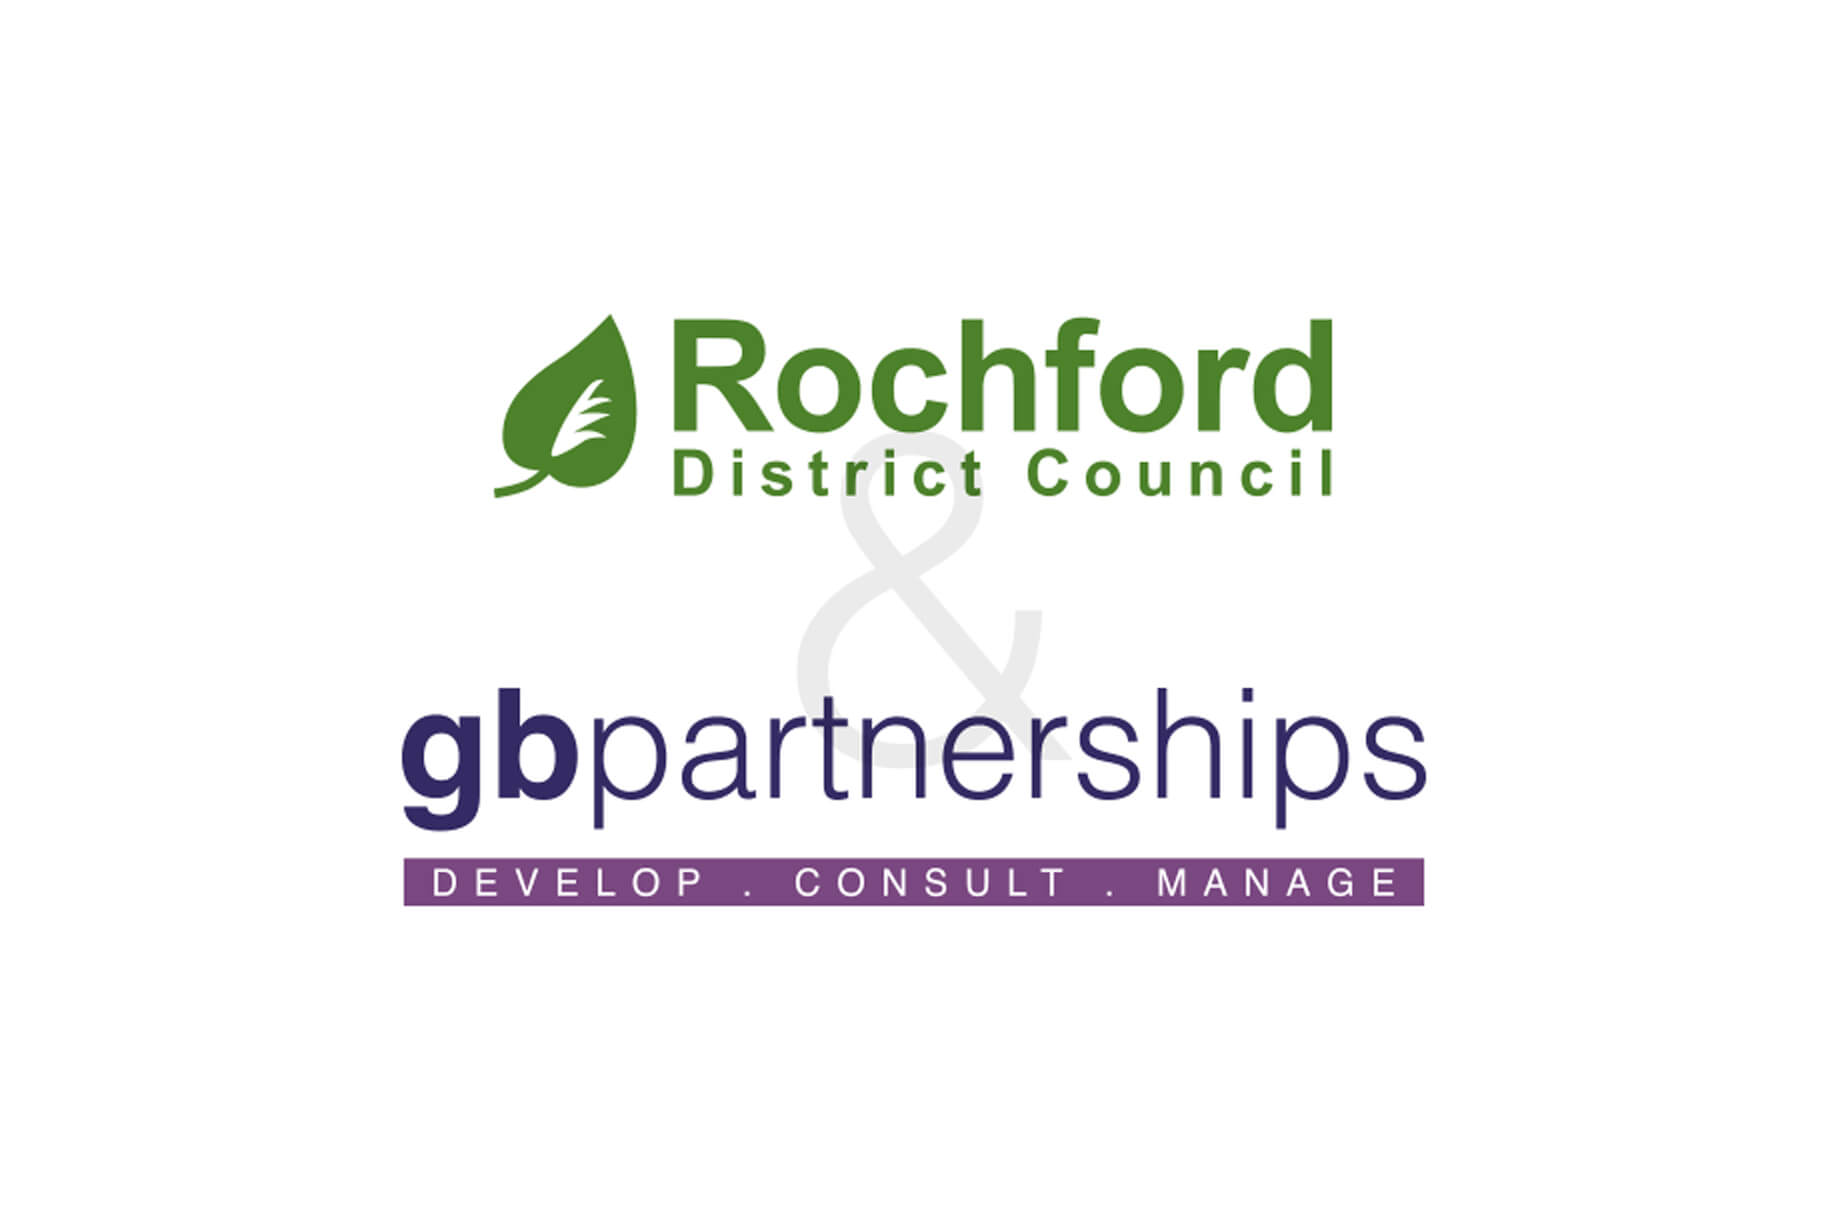 the rochford district council and gbpartnerships logos